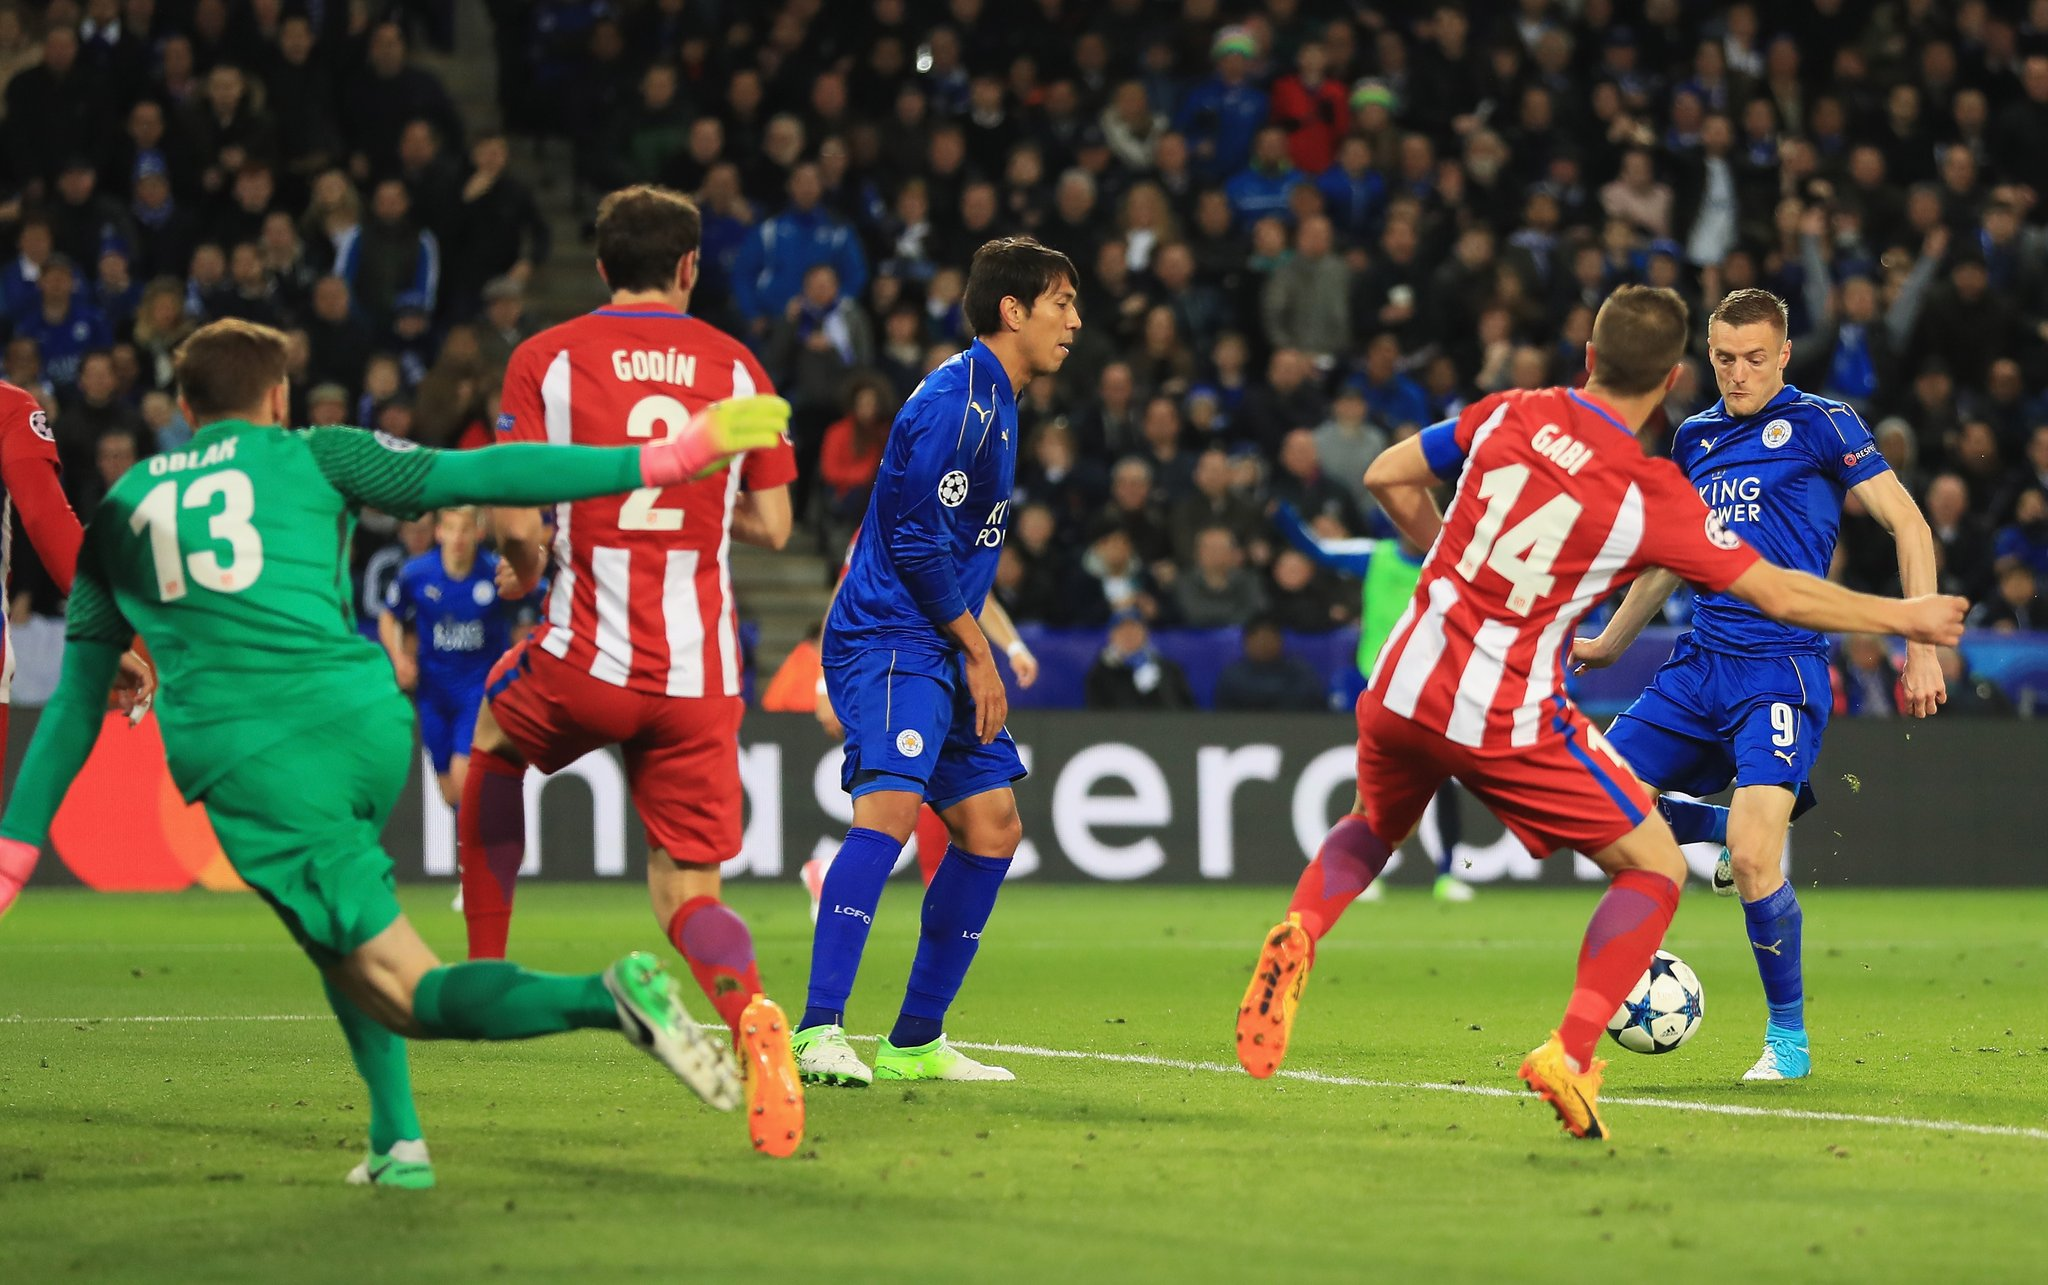 UCL: Ndidi Stars, Musa Benched As Leicester Bow Out To Atletico